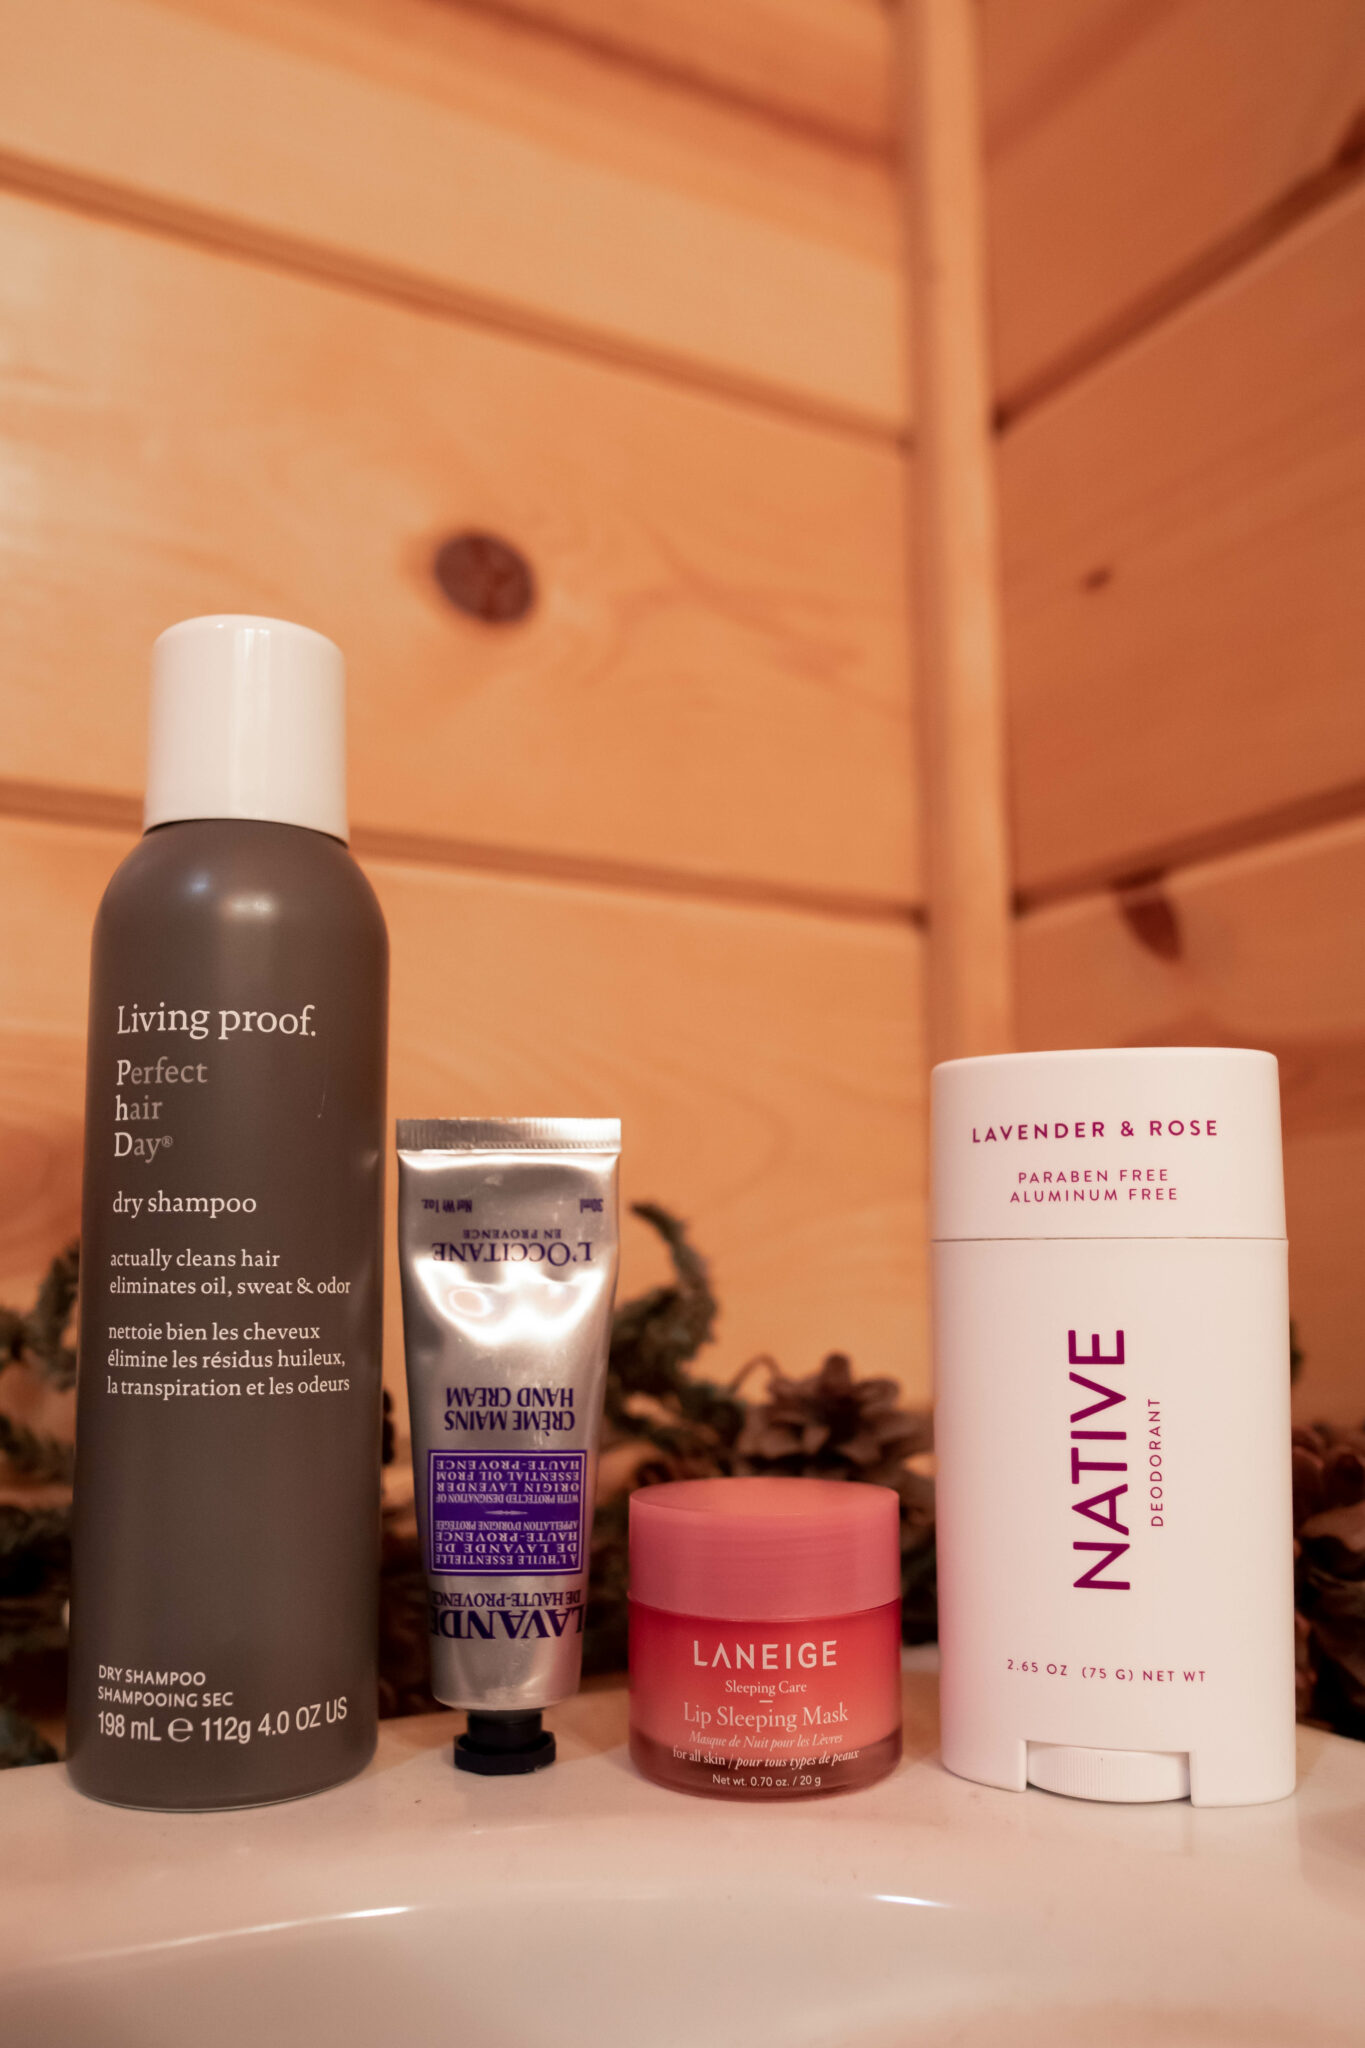 Cabin Beauty Essentials by popular Chicago beauty blog, Glass of Glam: image of Living Proof dry shampoo, Native deodorant, Laneige lip sleeping mask, and L'occitane hand cream.